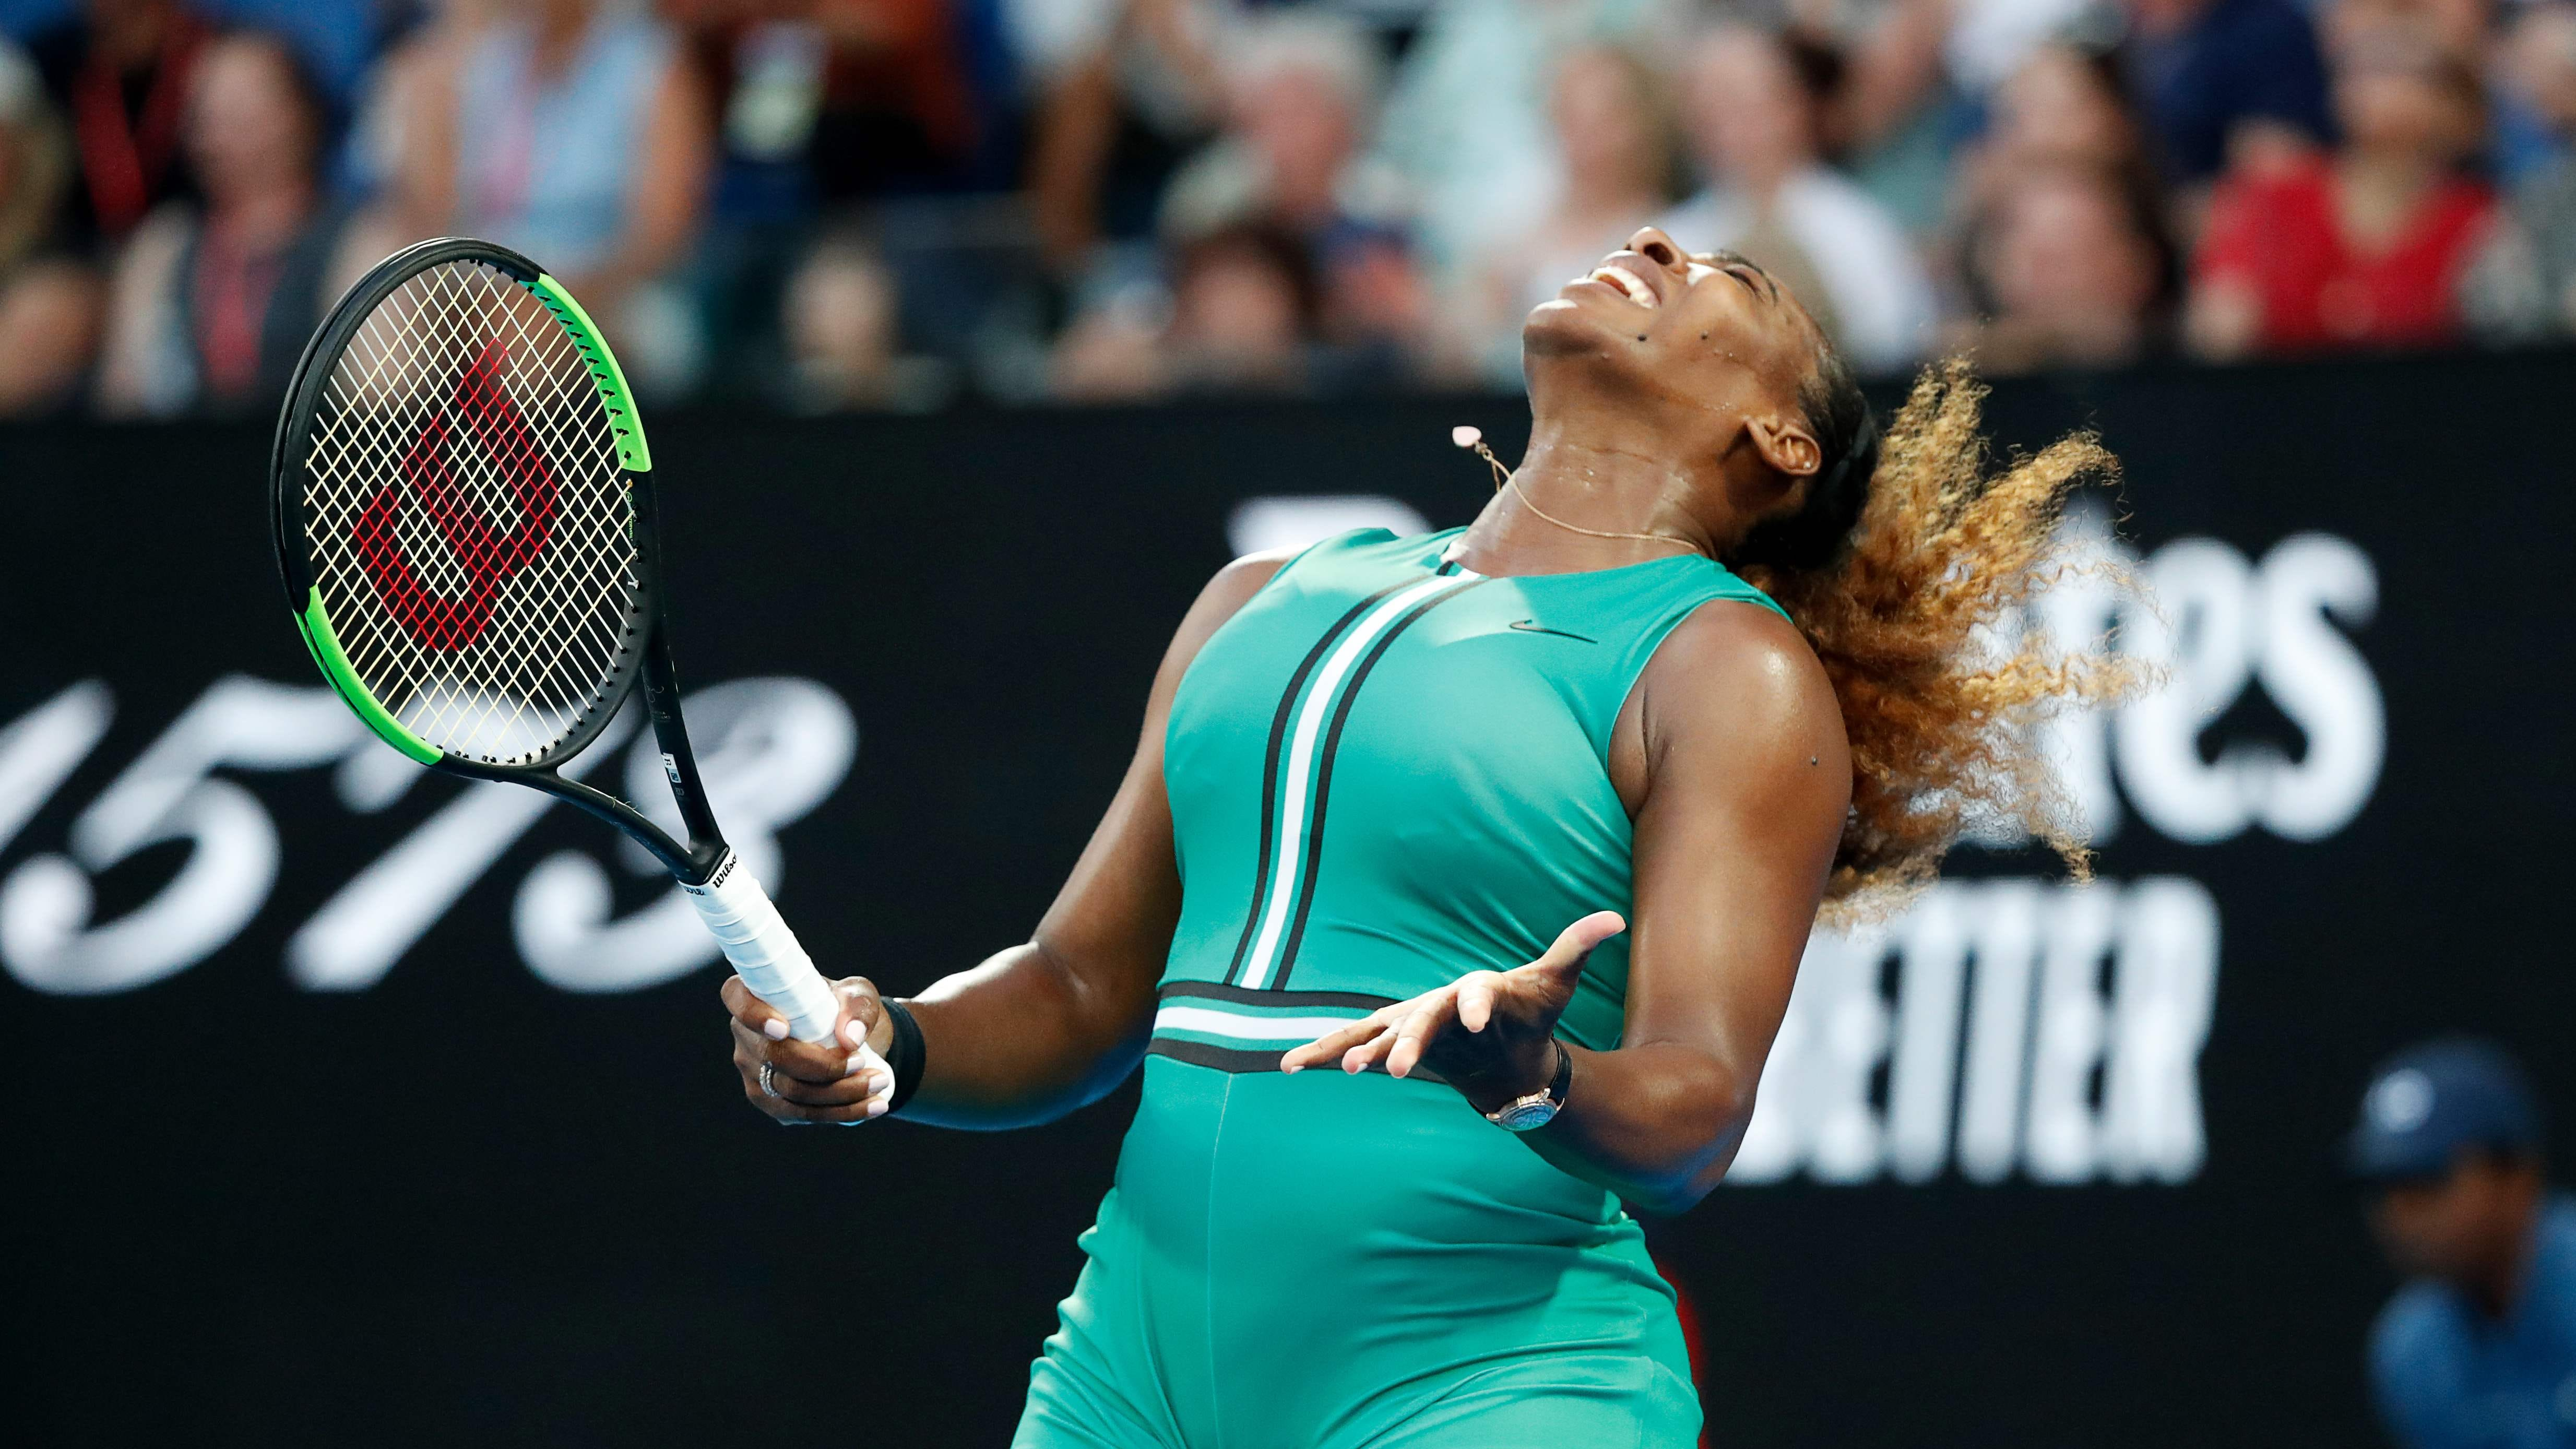 Serena Williams reacts after a point against Romania's Simona Halep during their women's singles match at the Australian Open on Jan. 21.